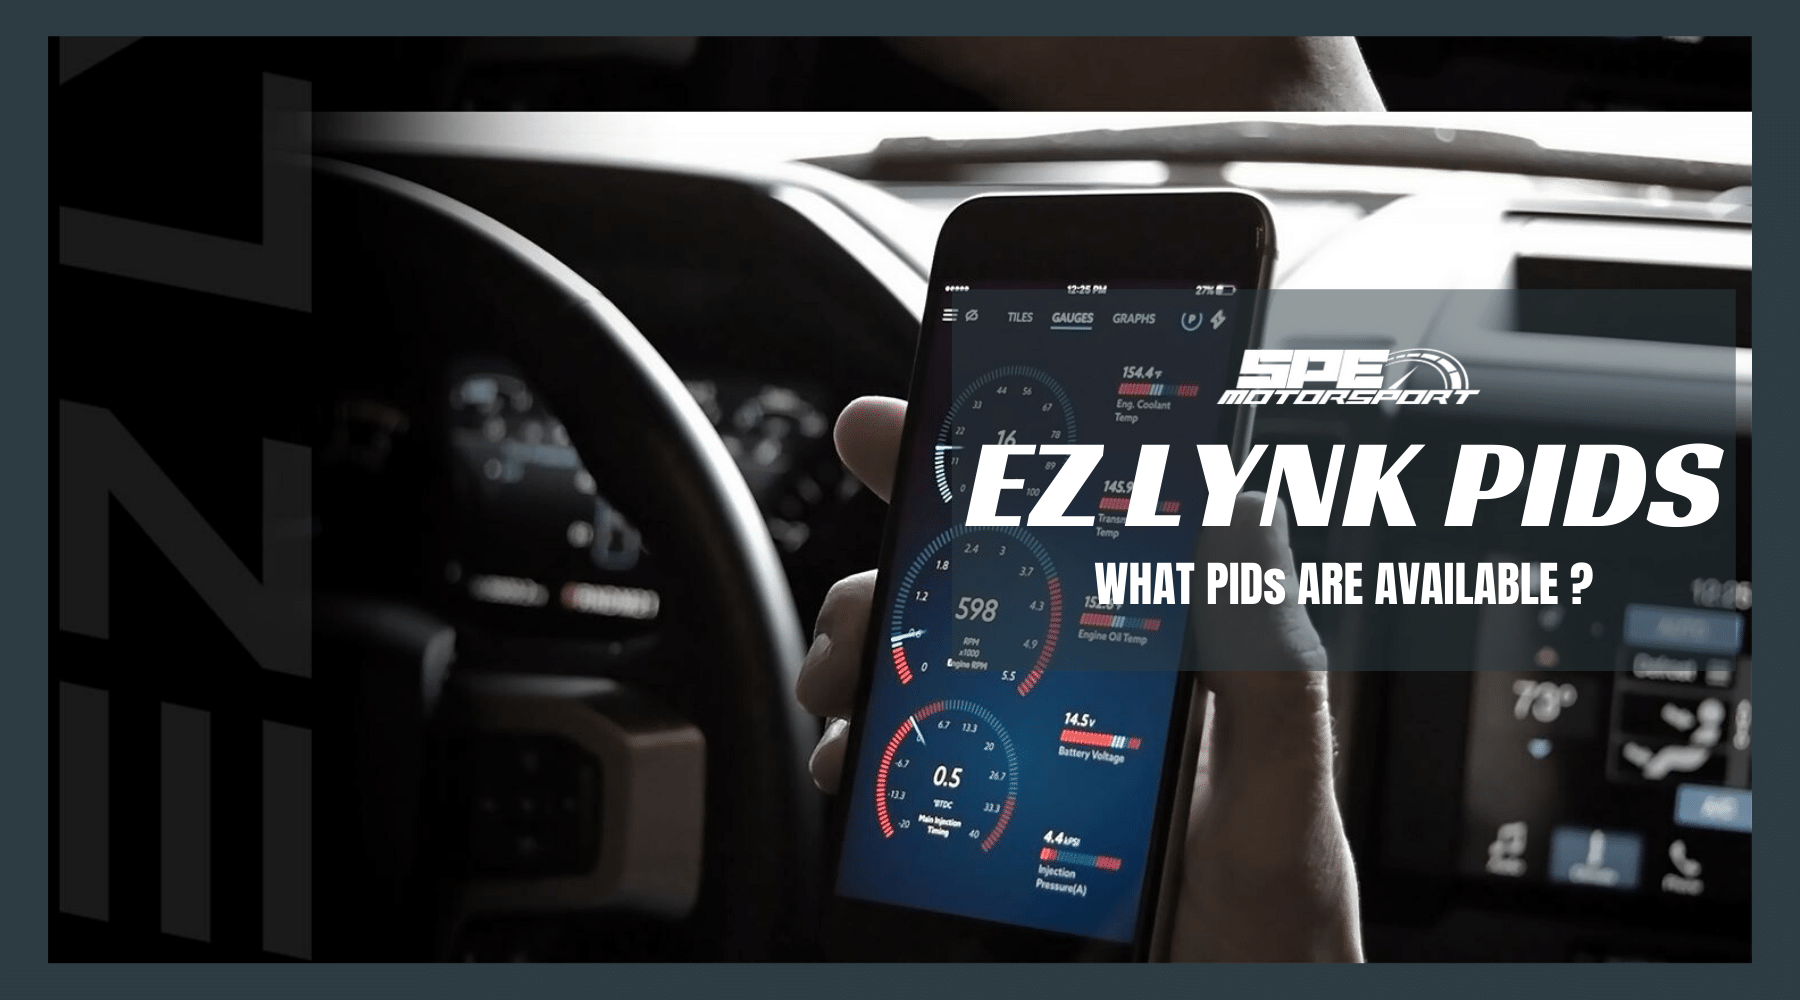 EZ Lynk PIDs blog cover photo